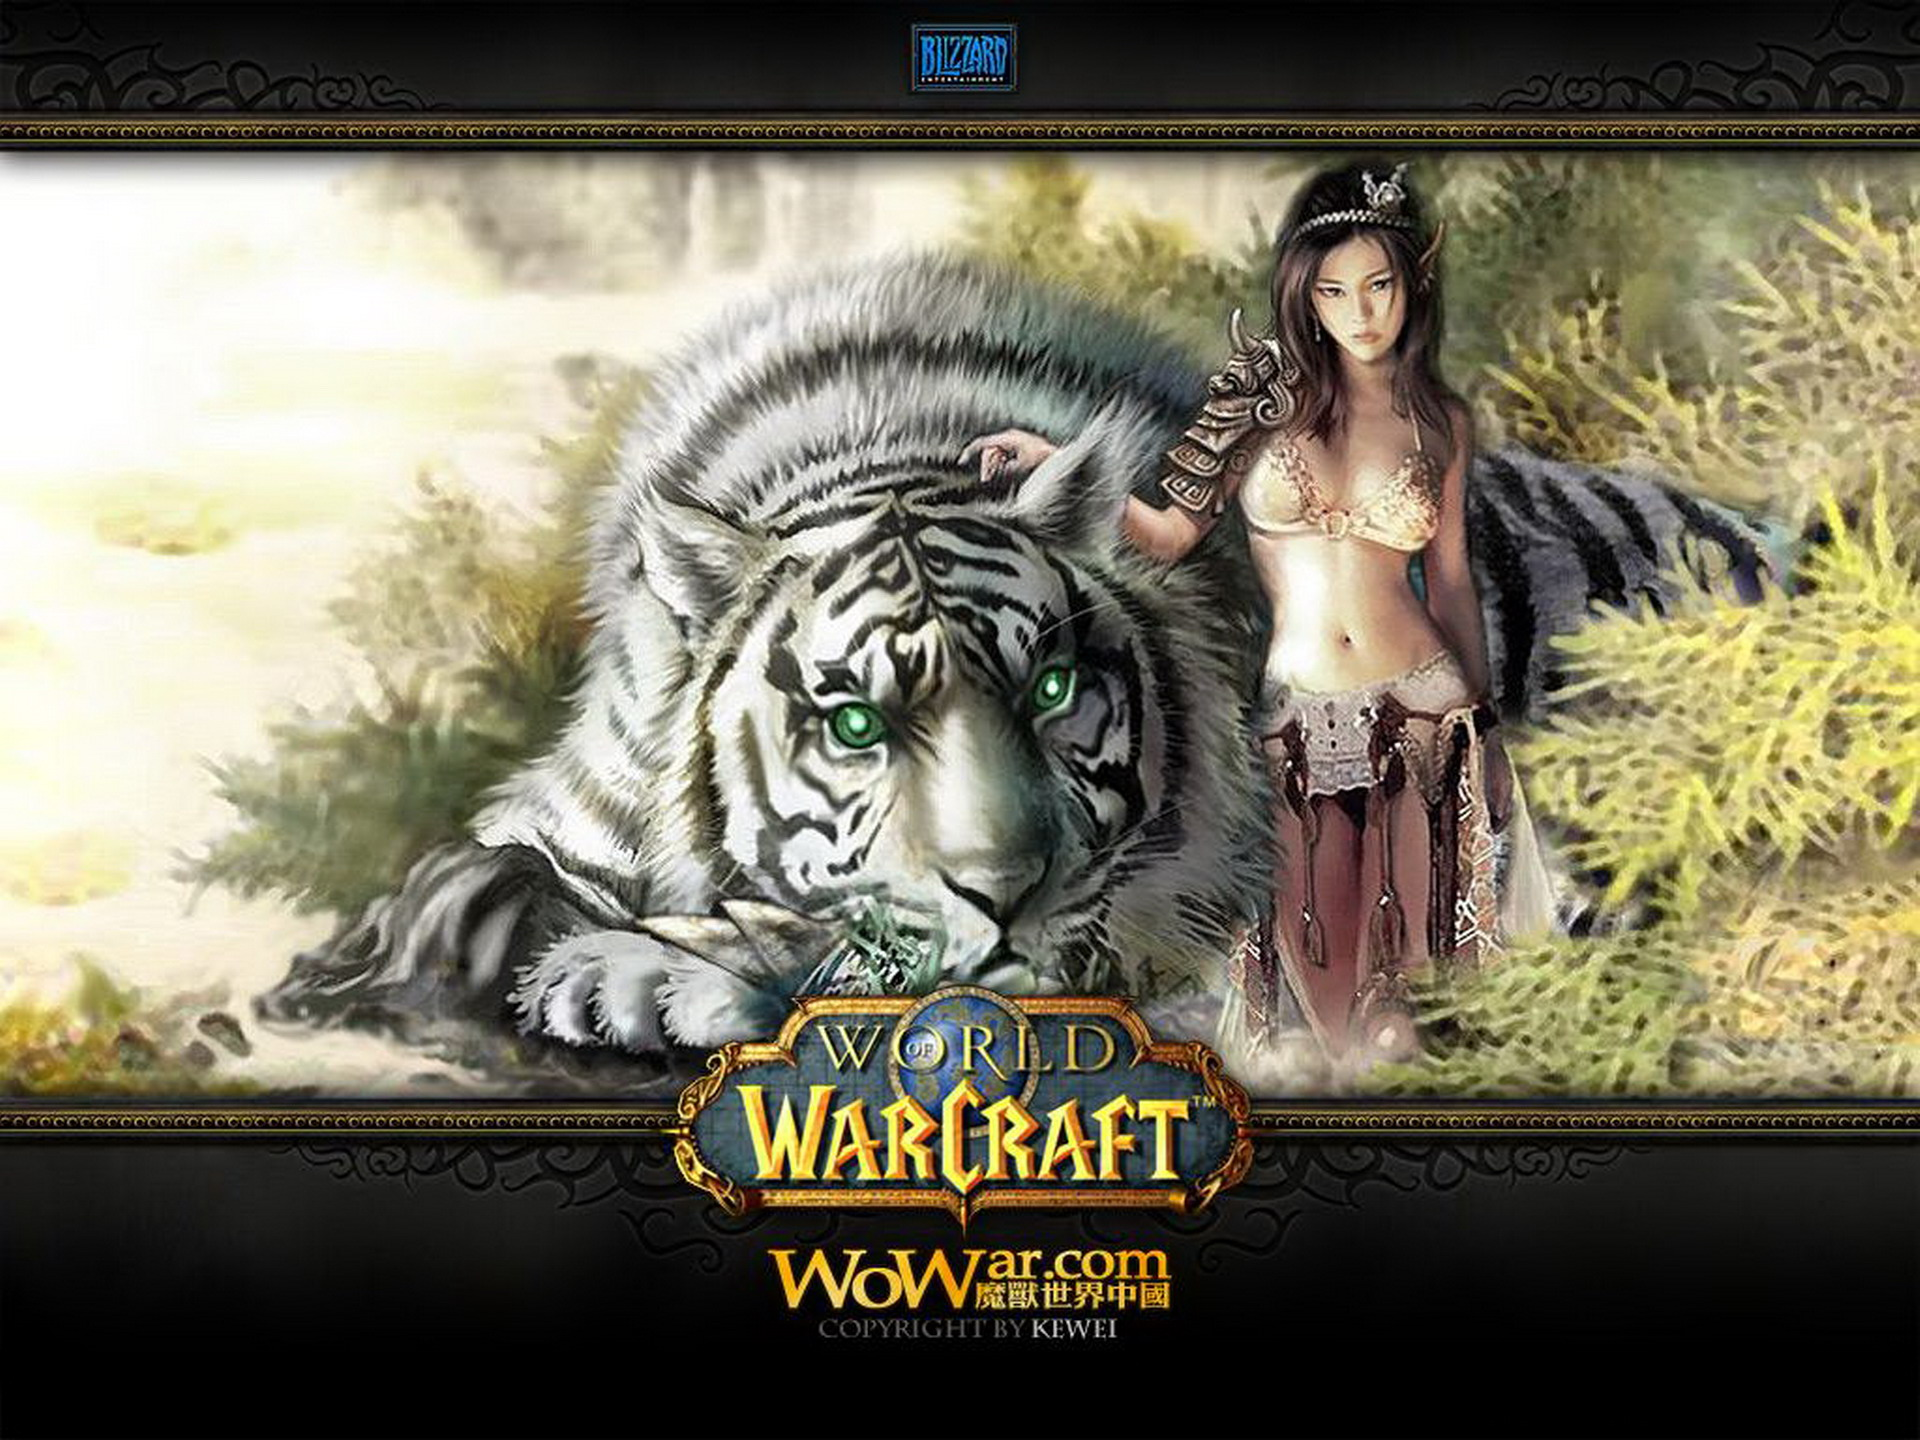 world of warcraft download wallpapers game Desktop Backgrounds for 1920x1440